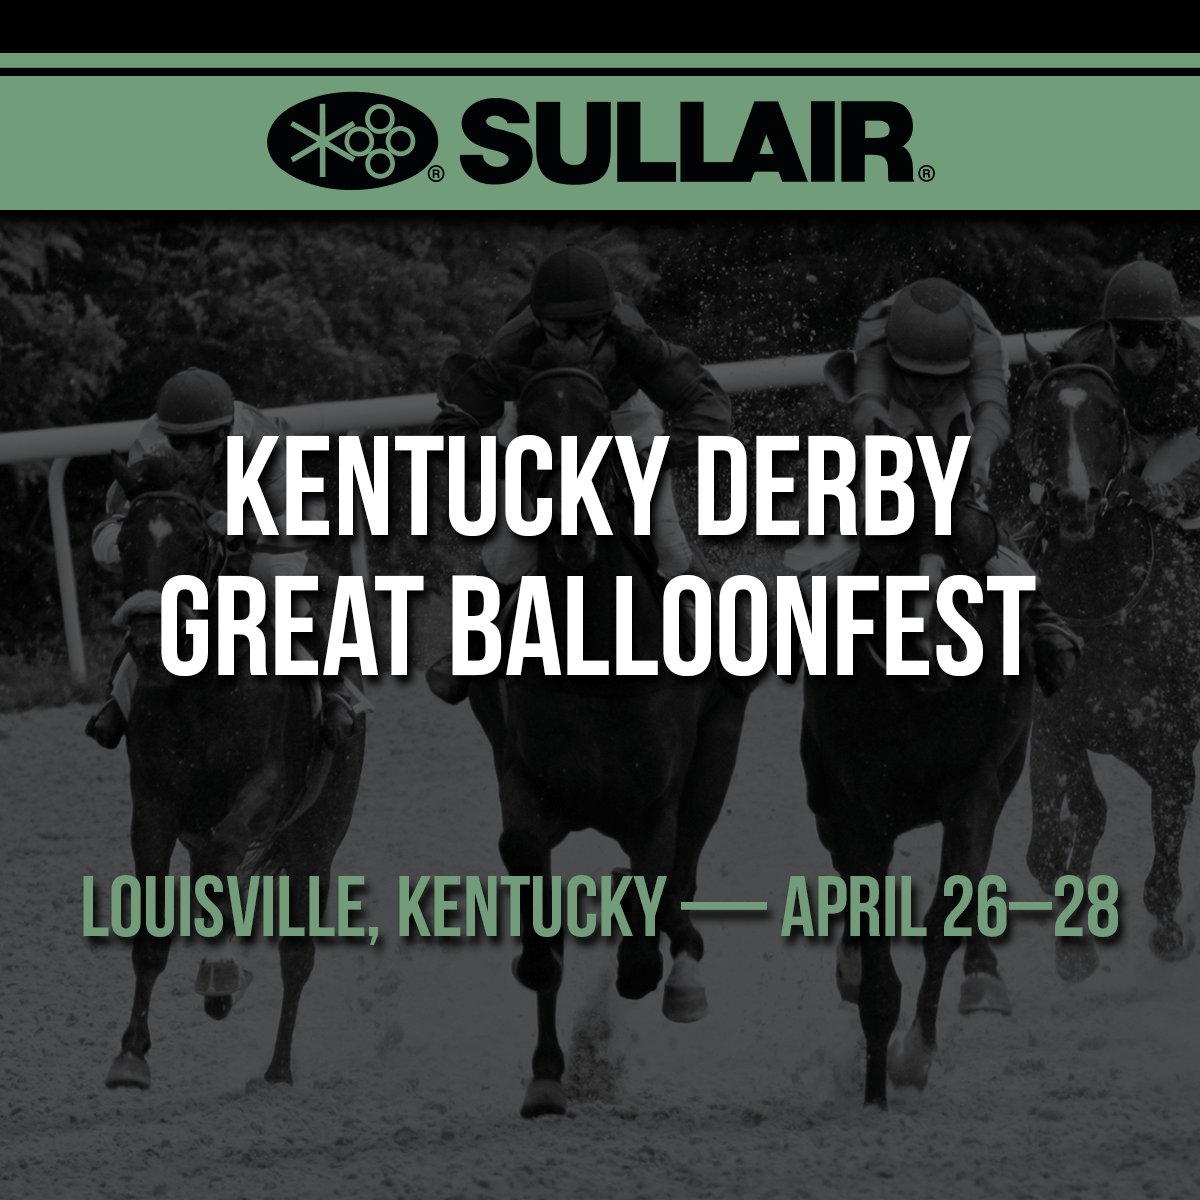 Kentucky Derby Great Balloon Fest